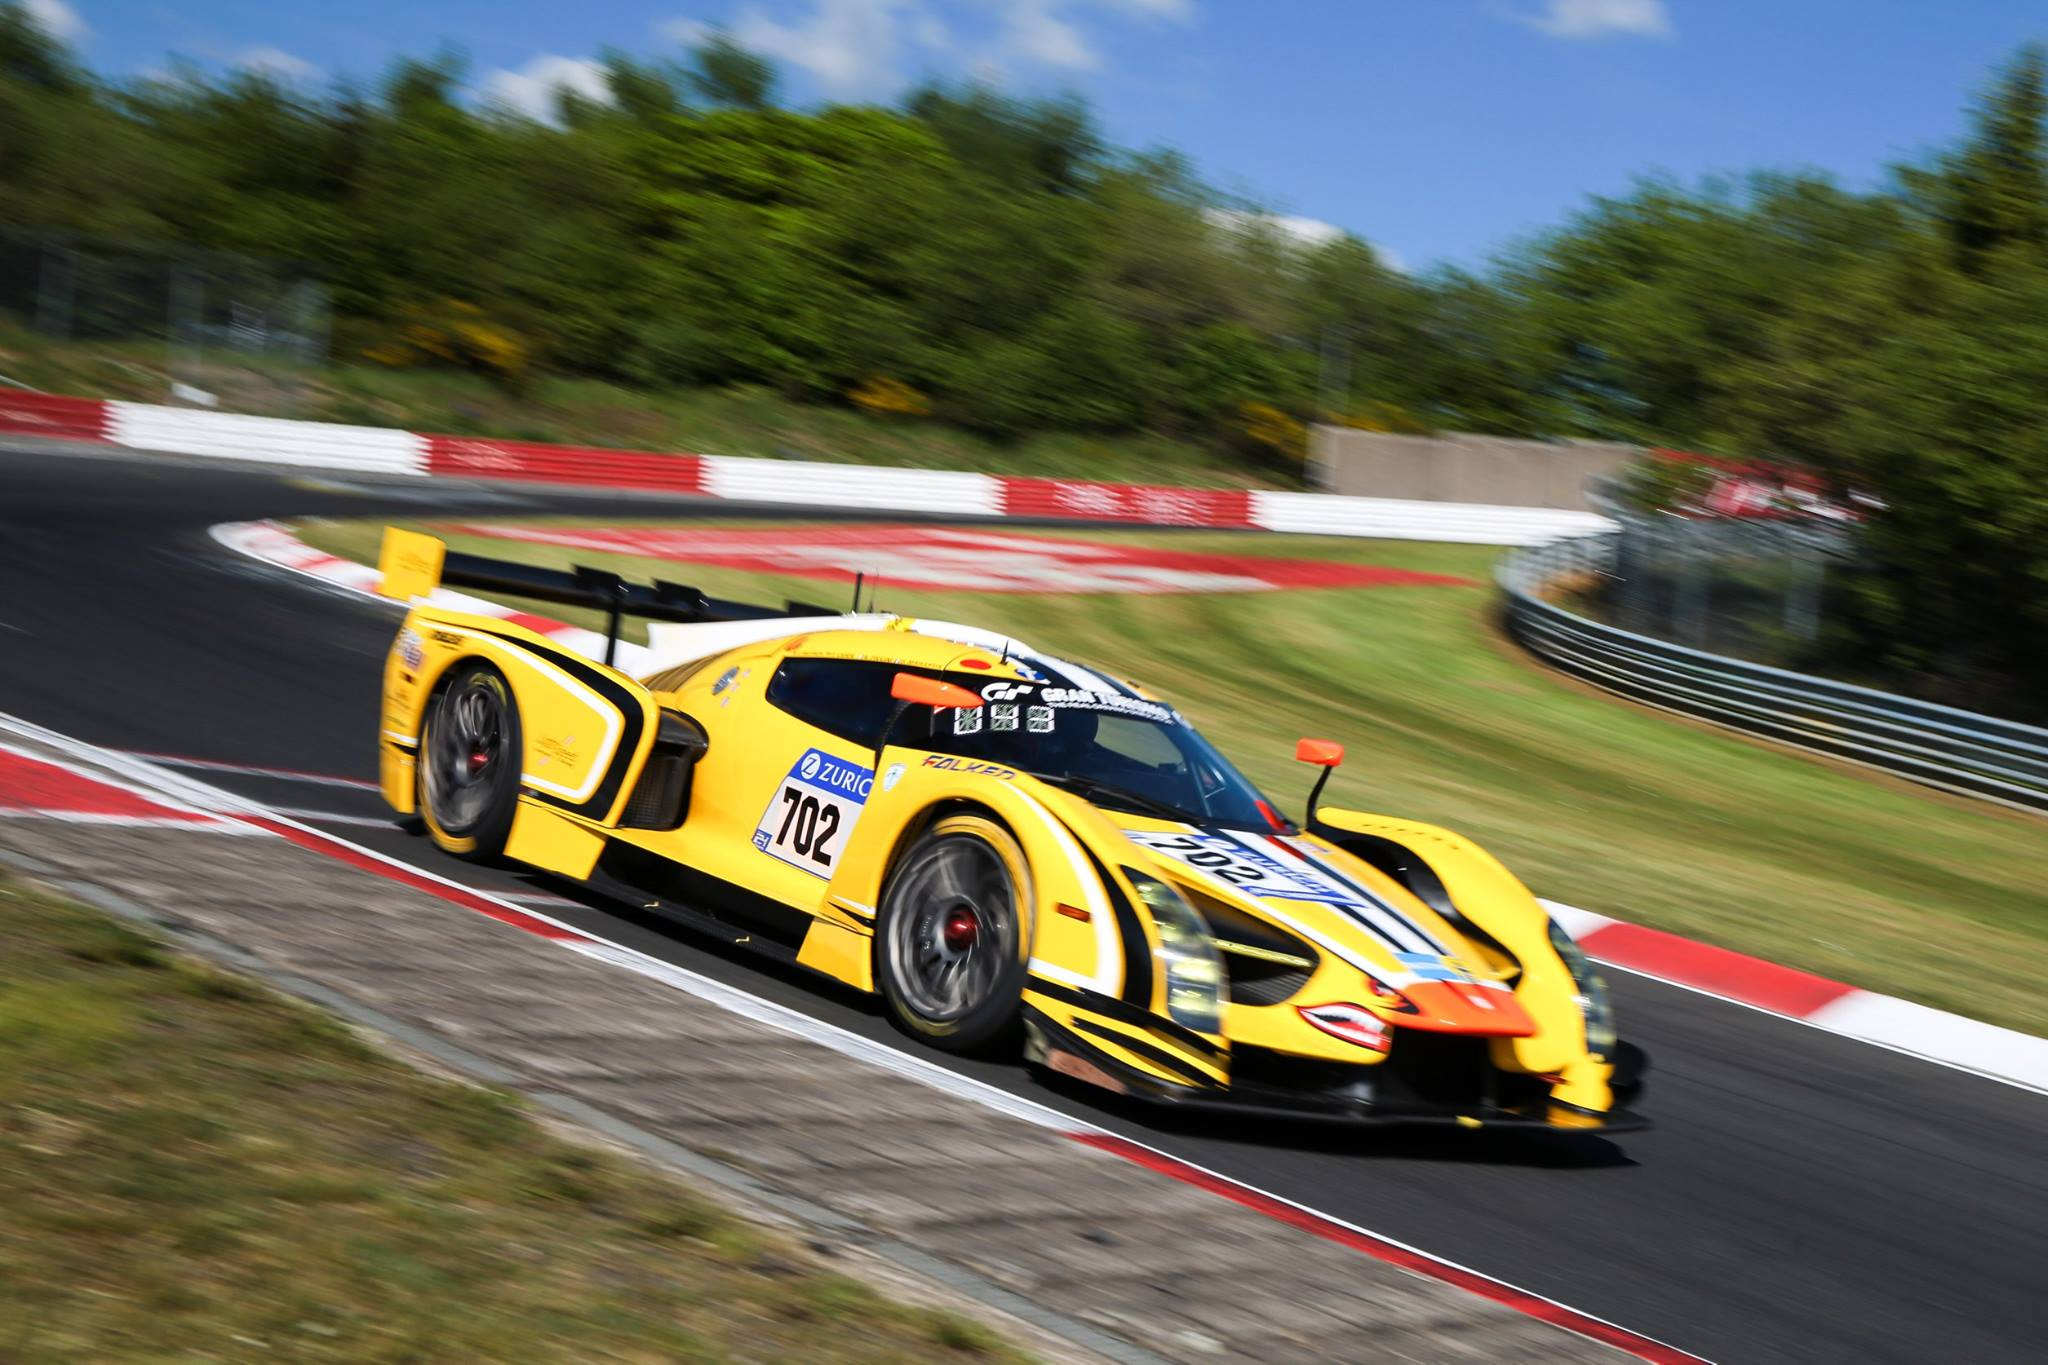 Glickenhaus Takes Surprise Pole For 45th Nurburgring 24